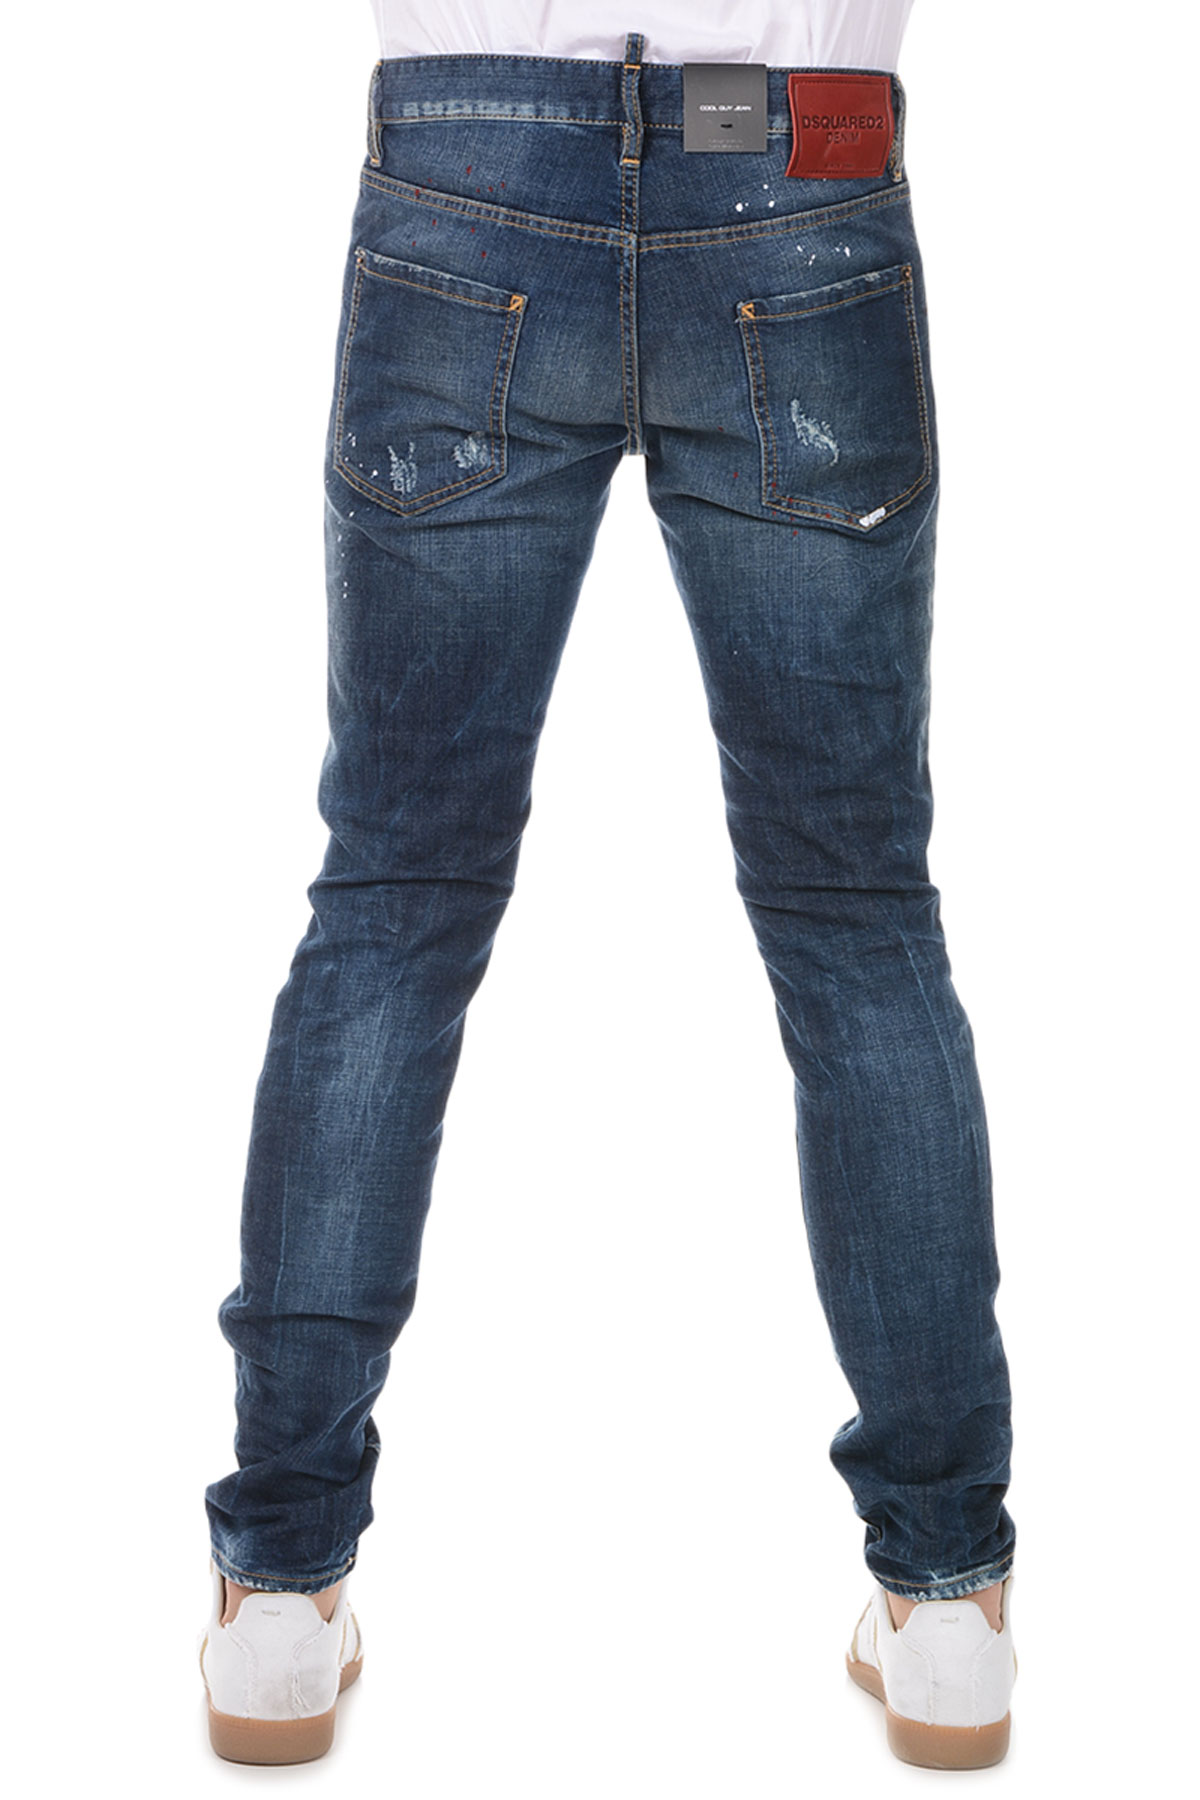 Dsquared2 Uomo Jeans COOL GUY in Denim Stretch 16 cm - Glamood Outlet 6022461d592a